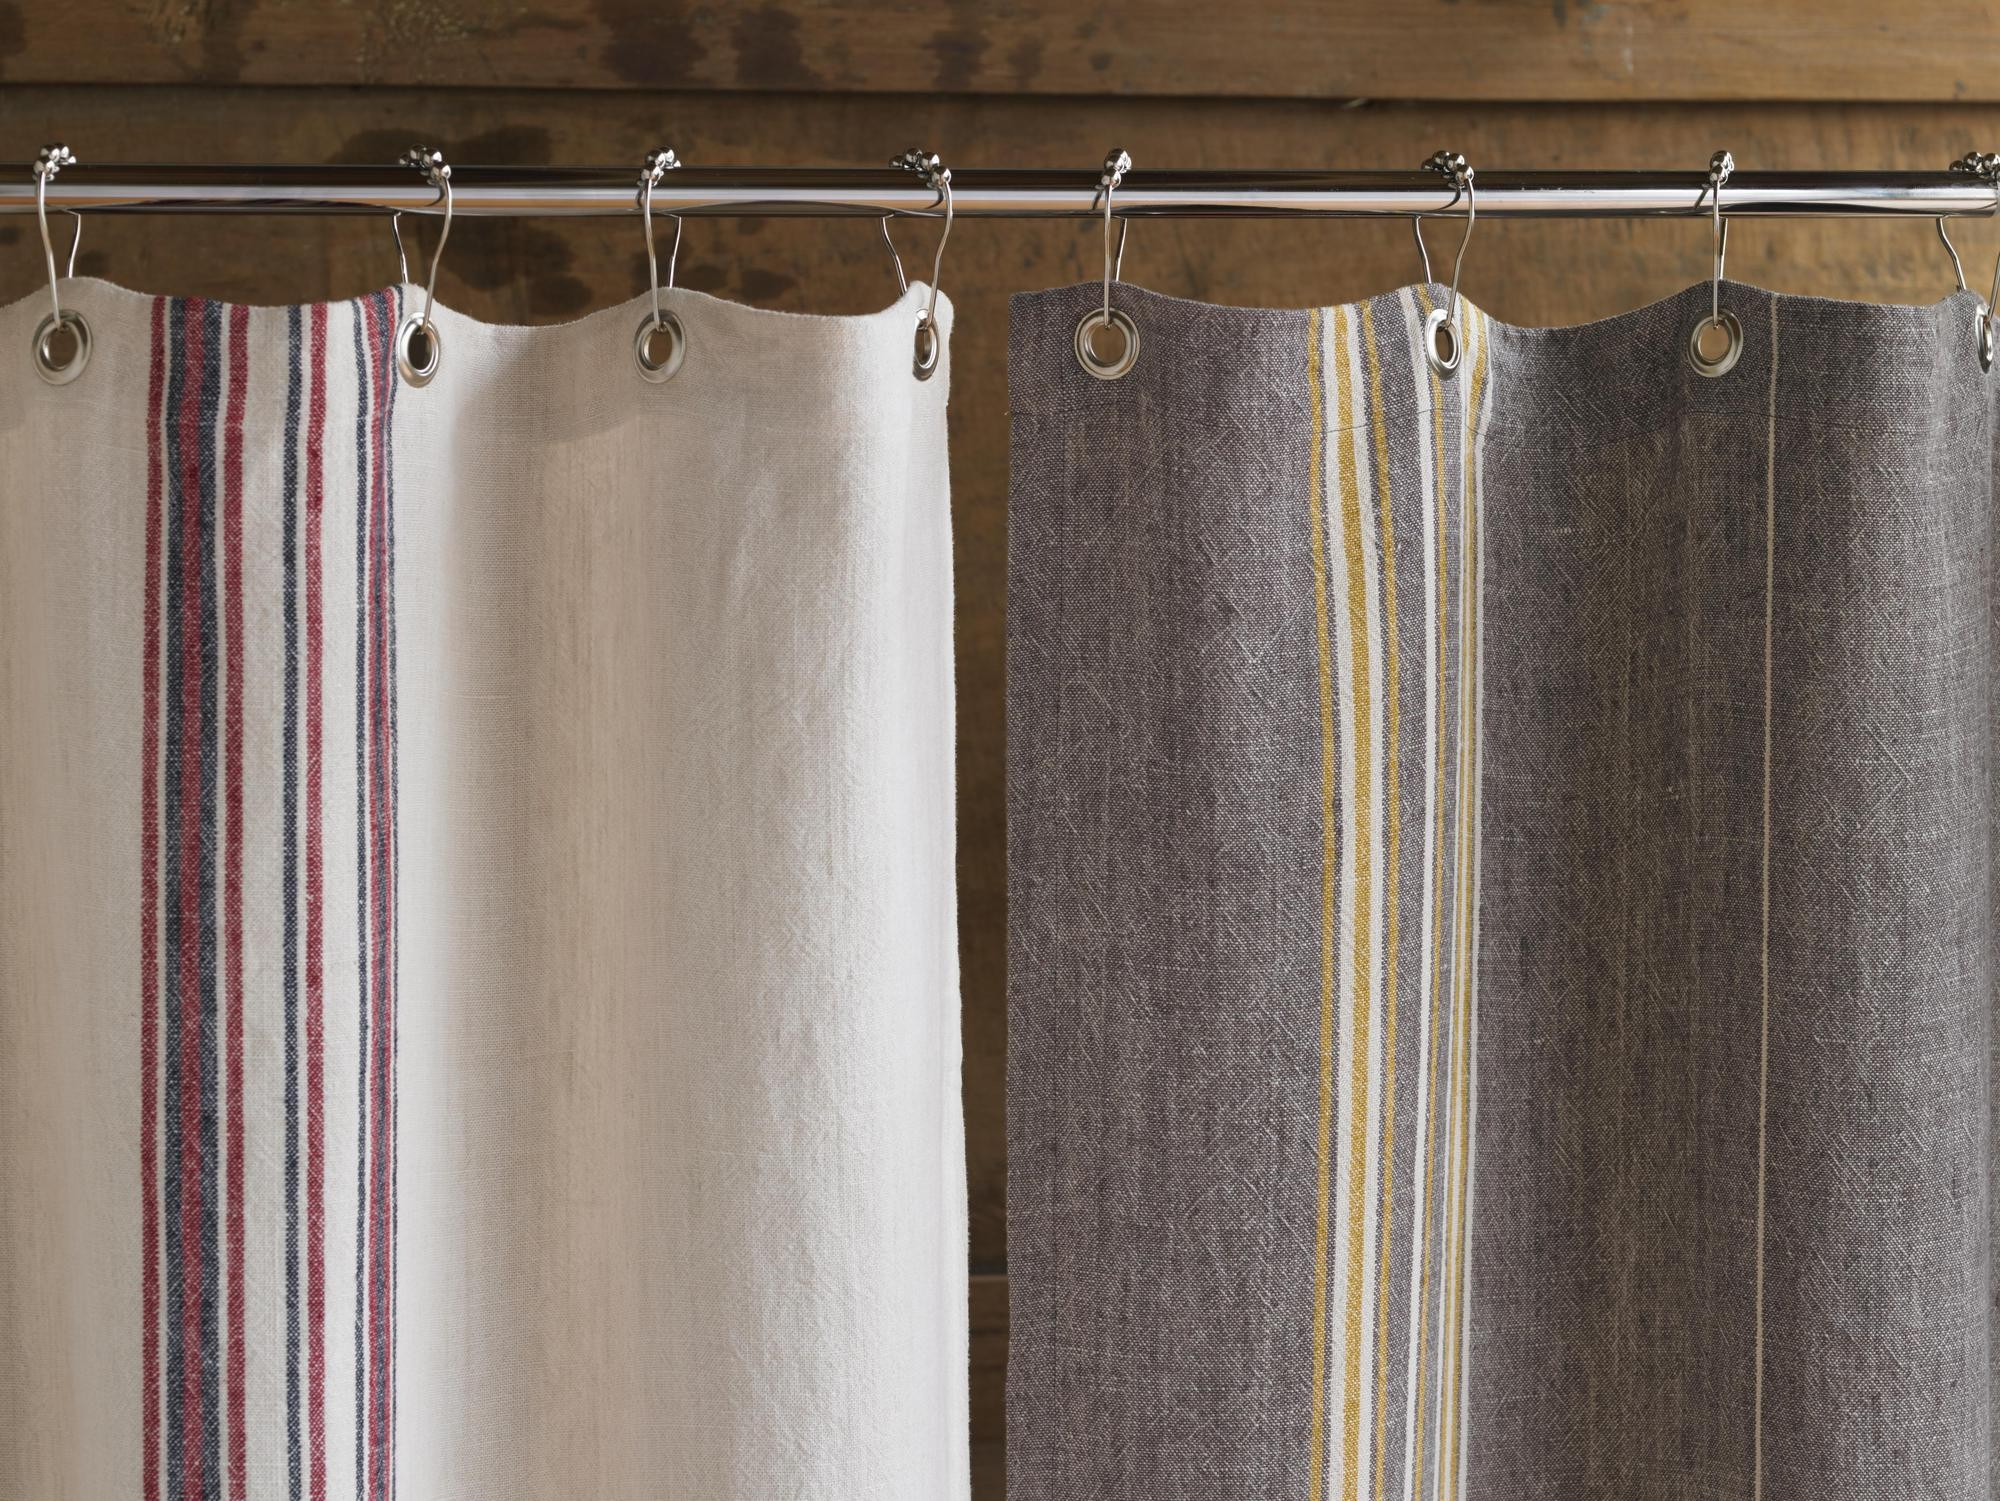 Importance Design And Color Rustic Shower Curtains Joanne Russo intended for sizing 2000 X 1501